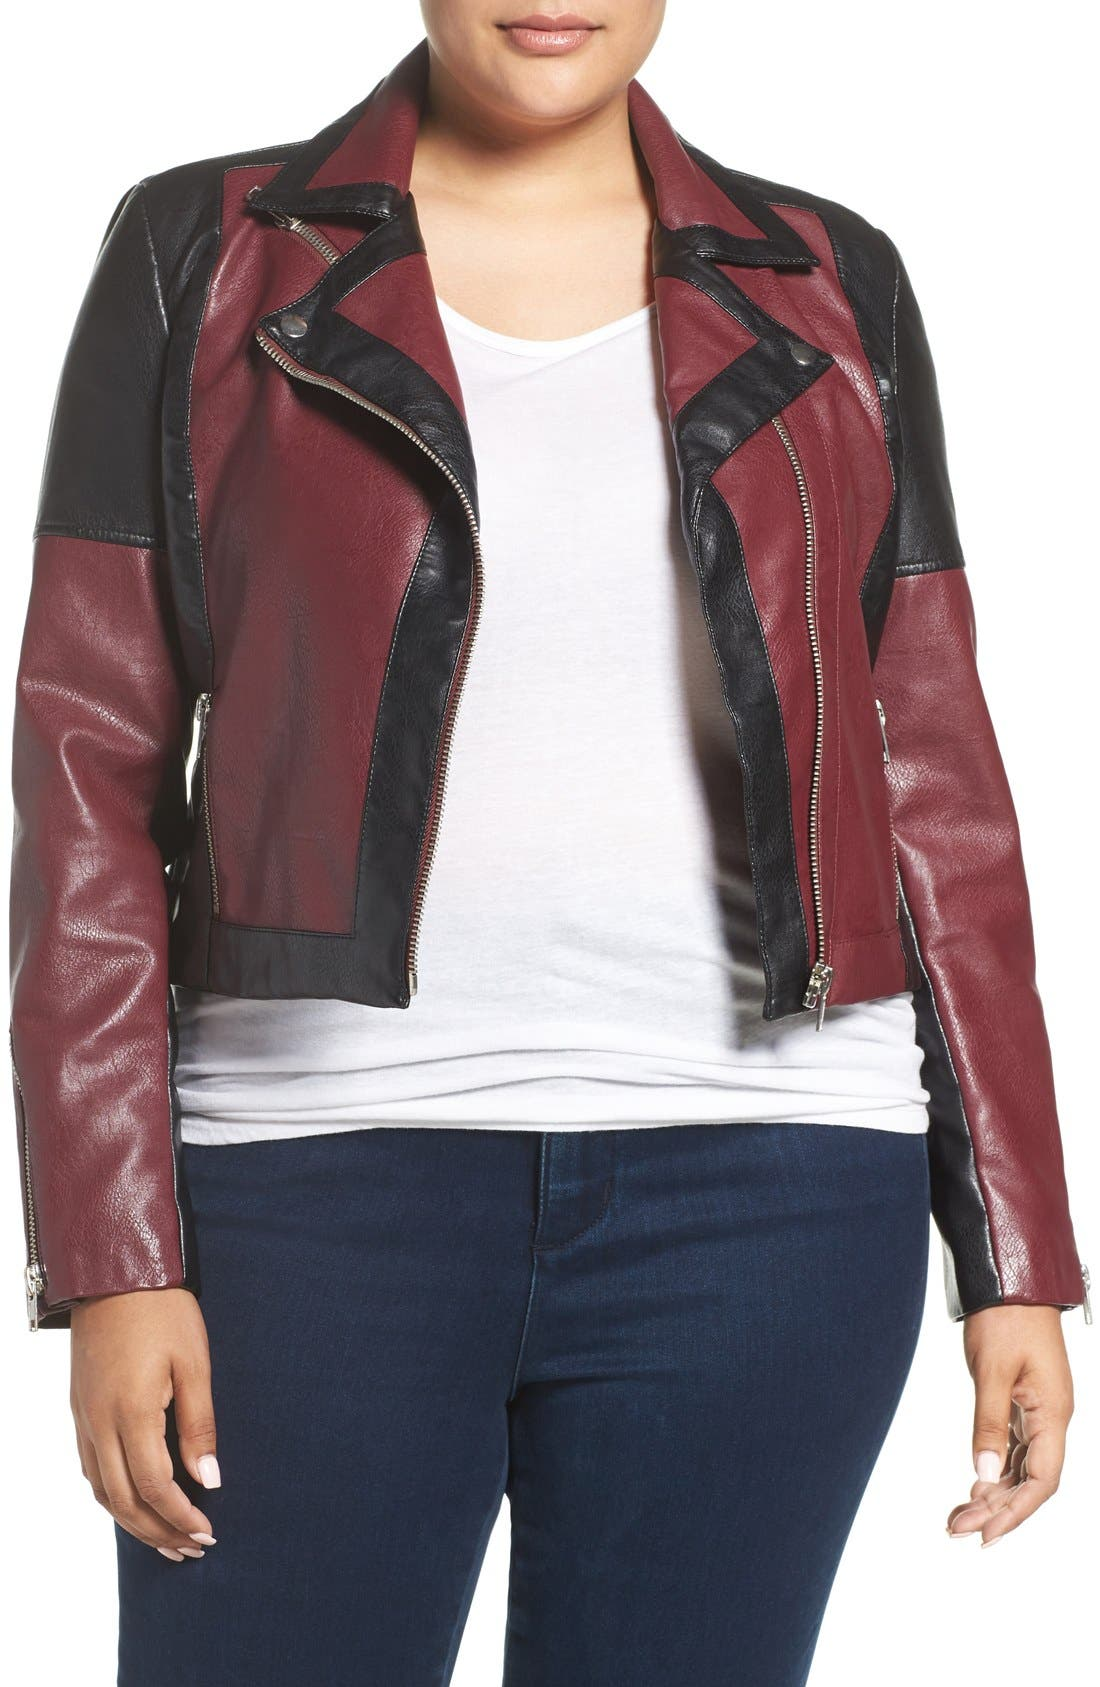 'Justine' Colorbock Faux Leather Jacket,                         Main,                         color, Tawny Port/ Black Combo